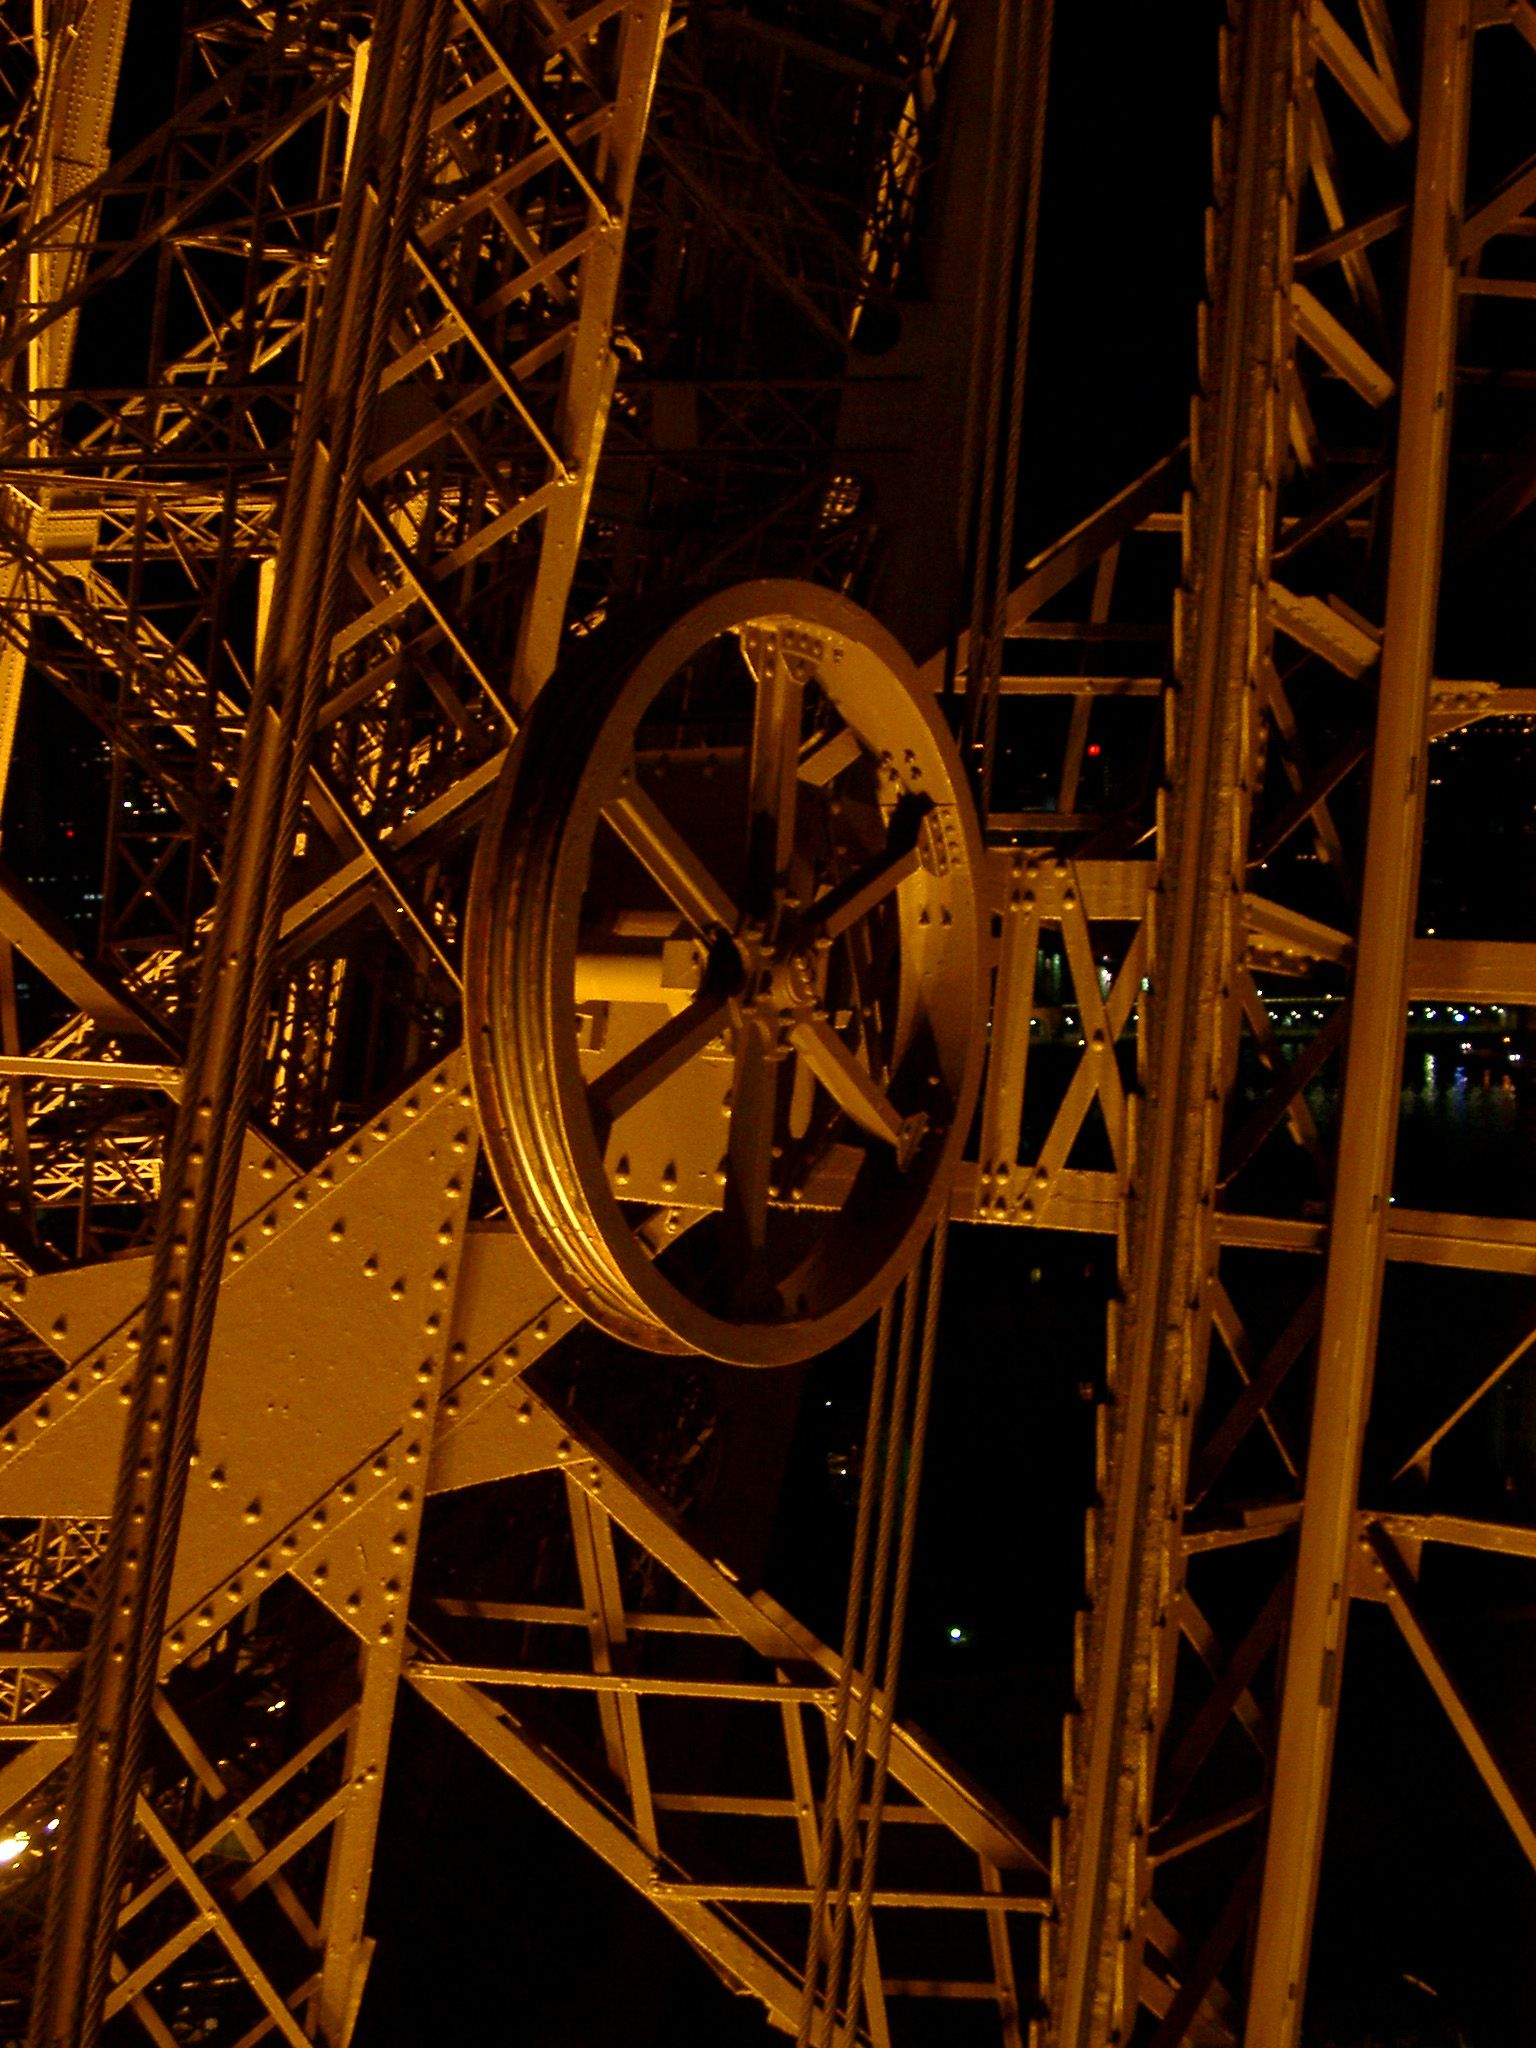 Eiffel Tower structure detail showing the wrought iron lattice framework and wheel